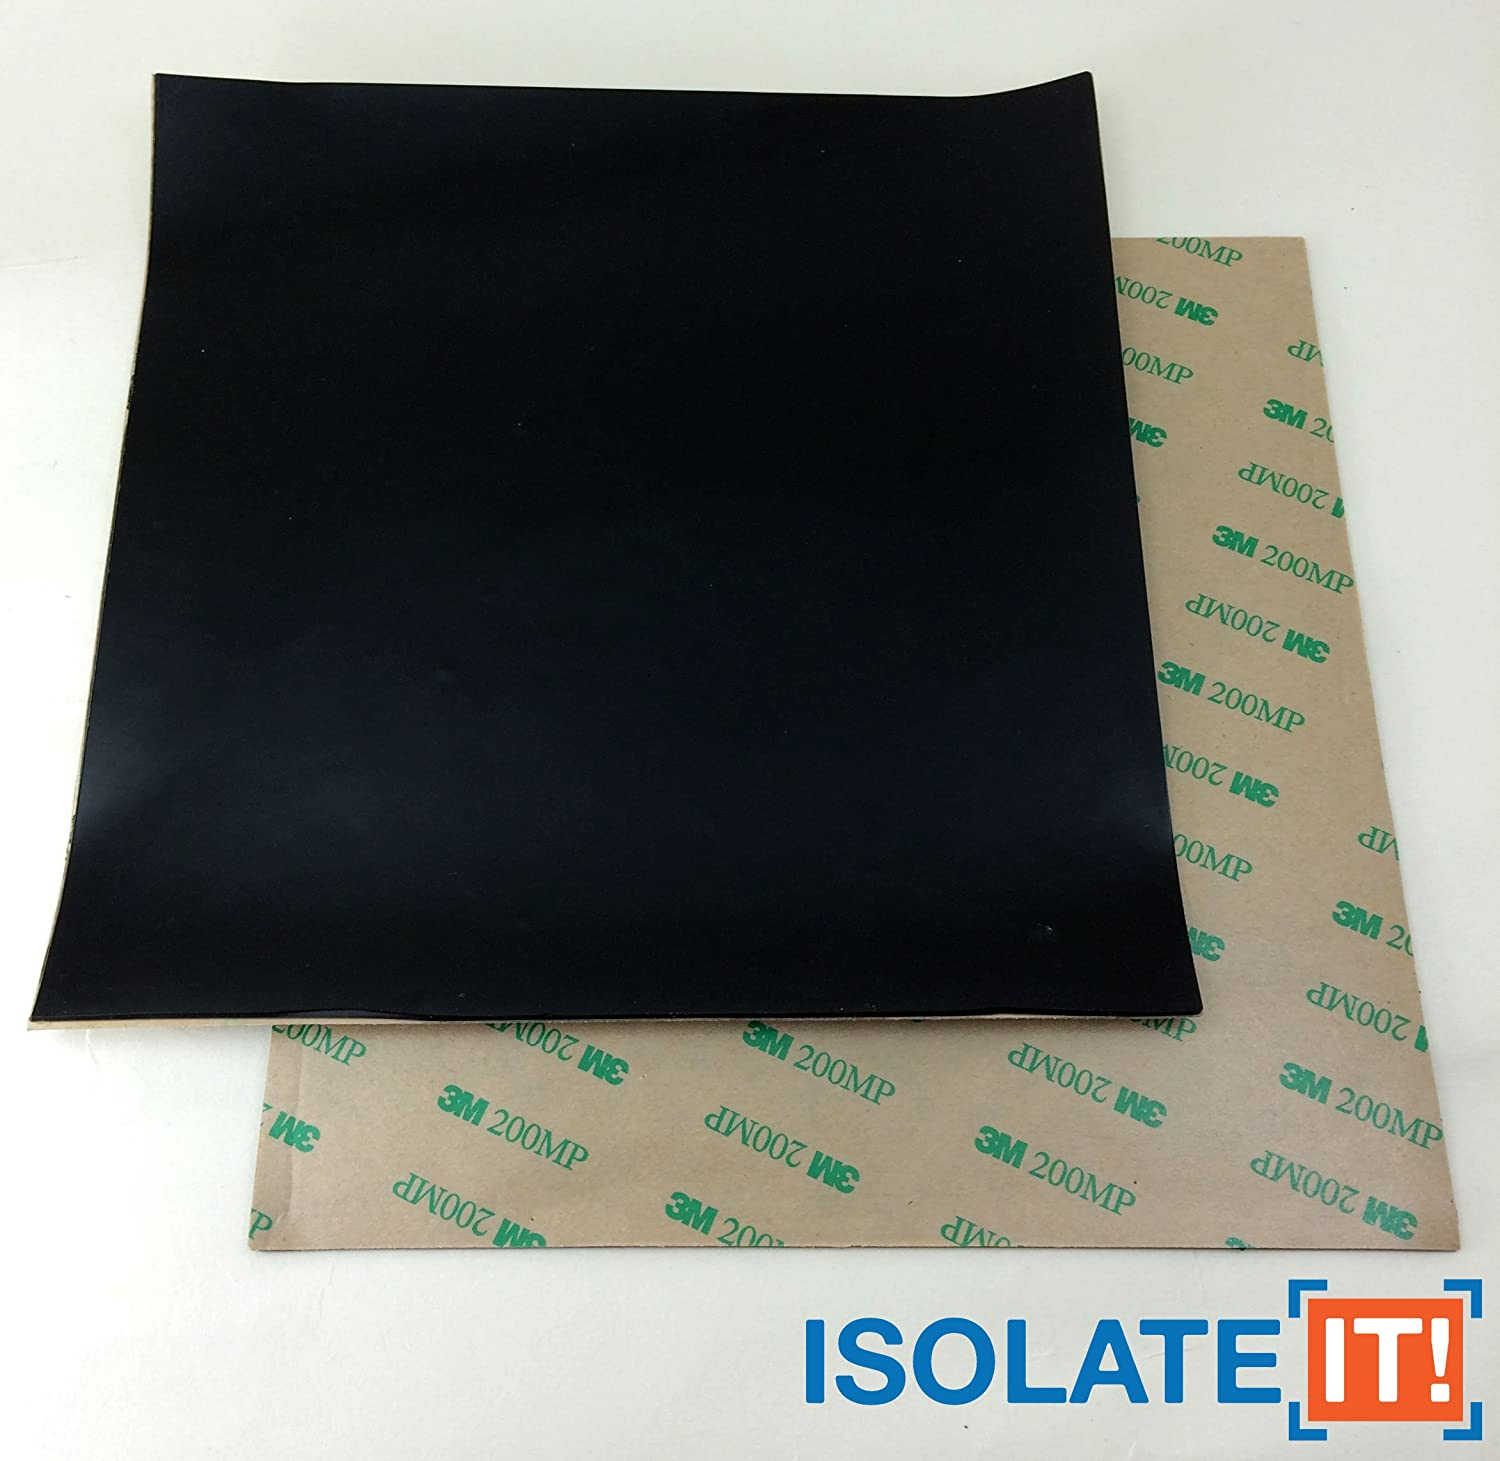 1 Sheet 0206081-60 Isolate It!: Sorbothane Acoustic and Vibration Thin Film Square 0.080 x 6 x 6 with 3M Adhesive 60 Duro